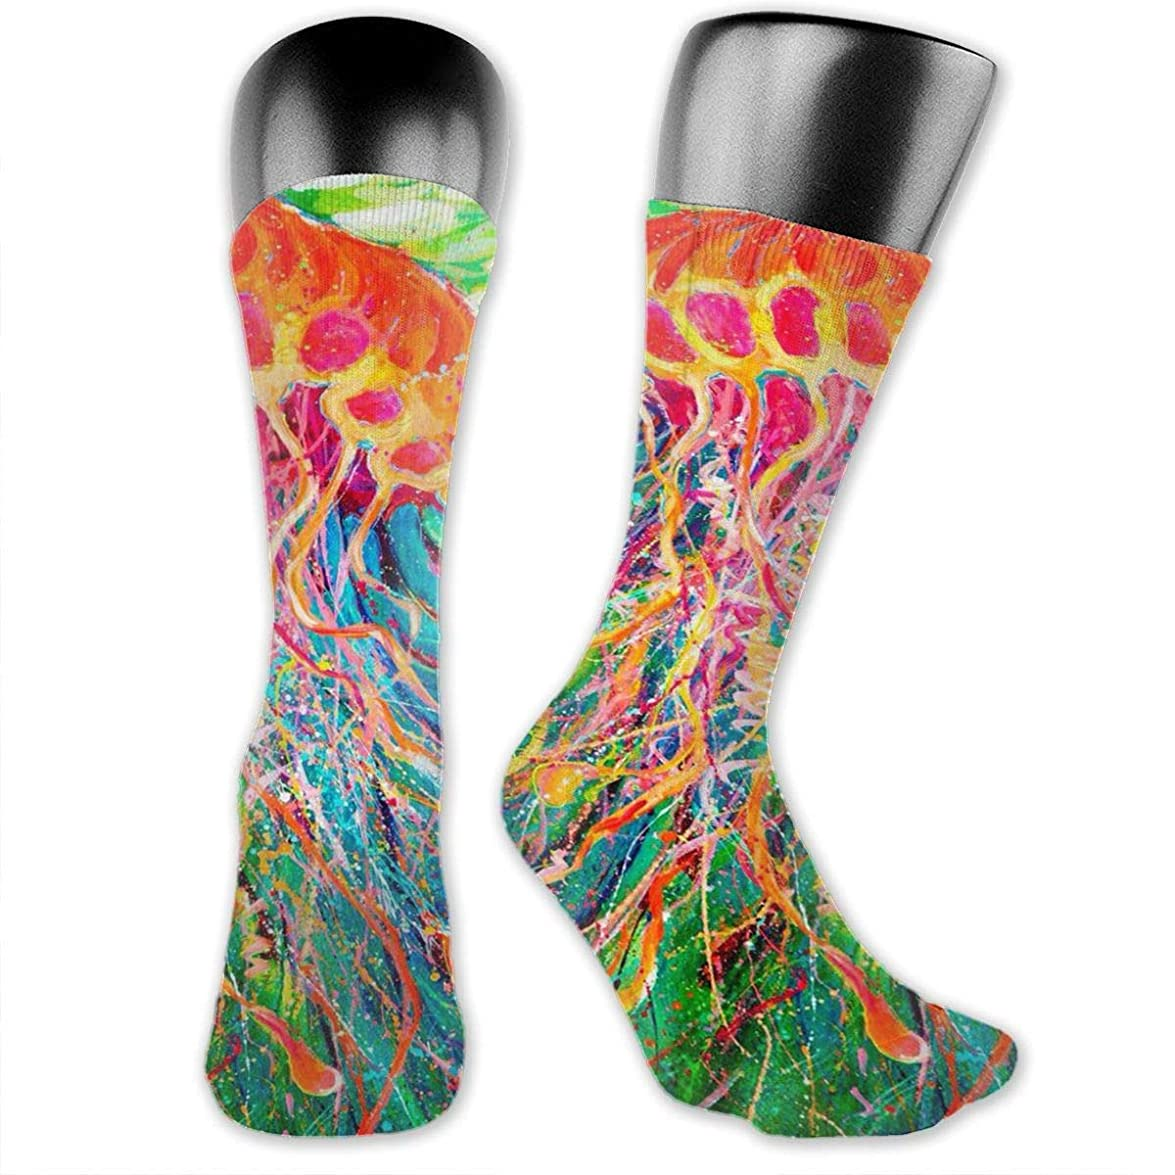 シード制限する感覚MKLOS 通気性 圧縮ソックス Breathable Extra Long Cotton Mid Thigh High Cannabis Weed Leaf Exotic Psychedelic Print Compression High Tube Thigh Boot Stockings Knee High Women Girl